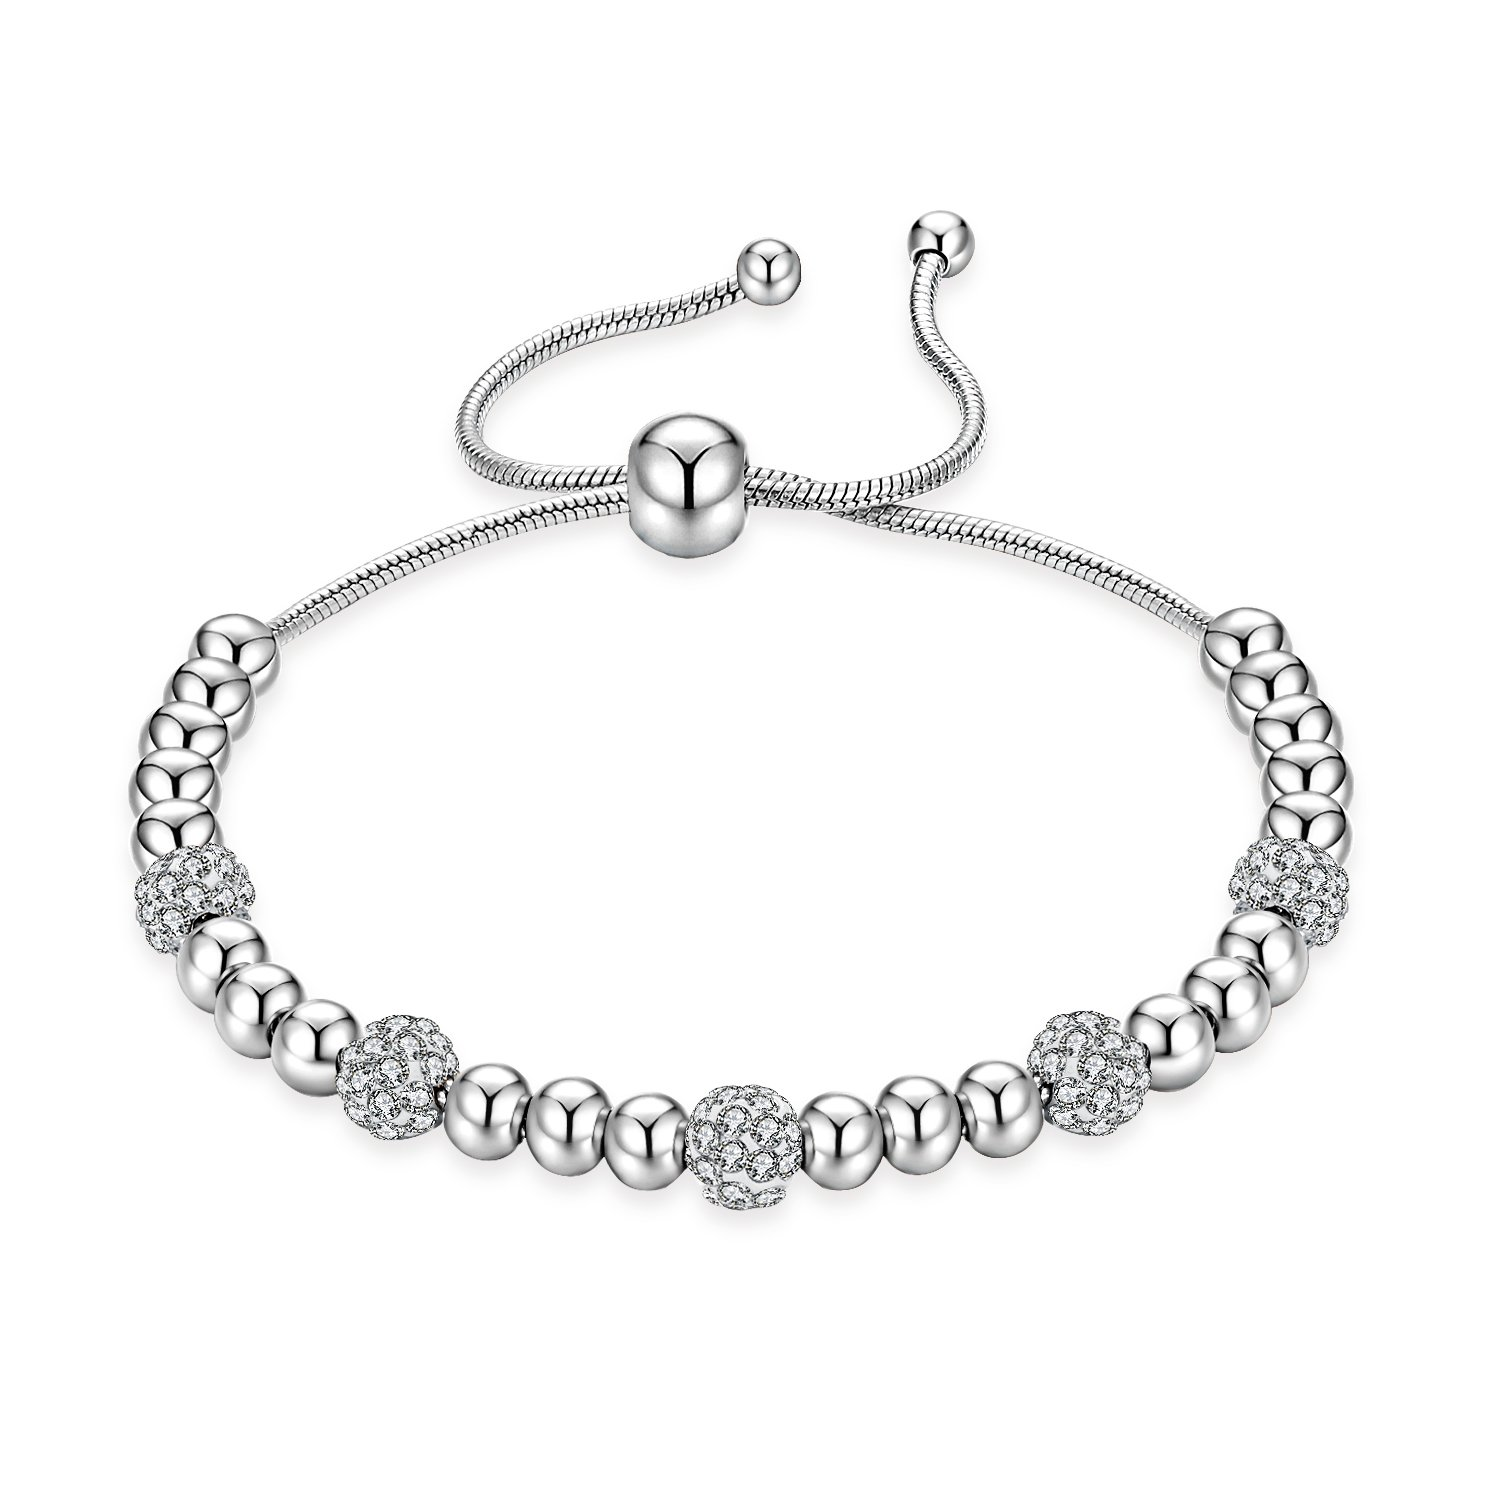 MONIYA Silver Tone Stainless Steel Adjustable Beads Bracelet With Sparkling Cubic Zirconia Stone For Women